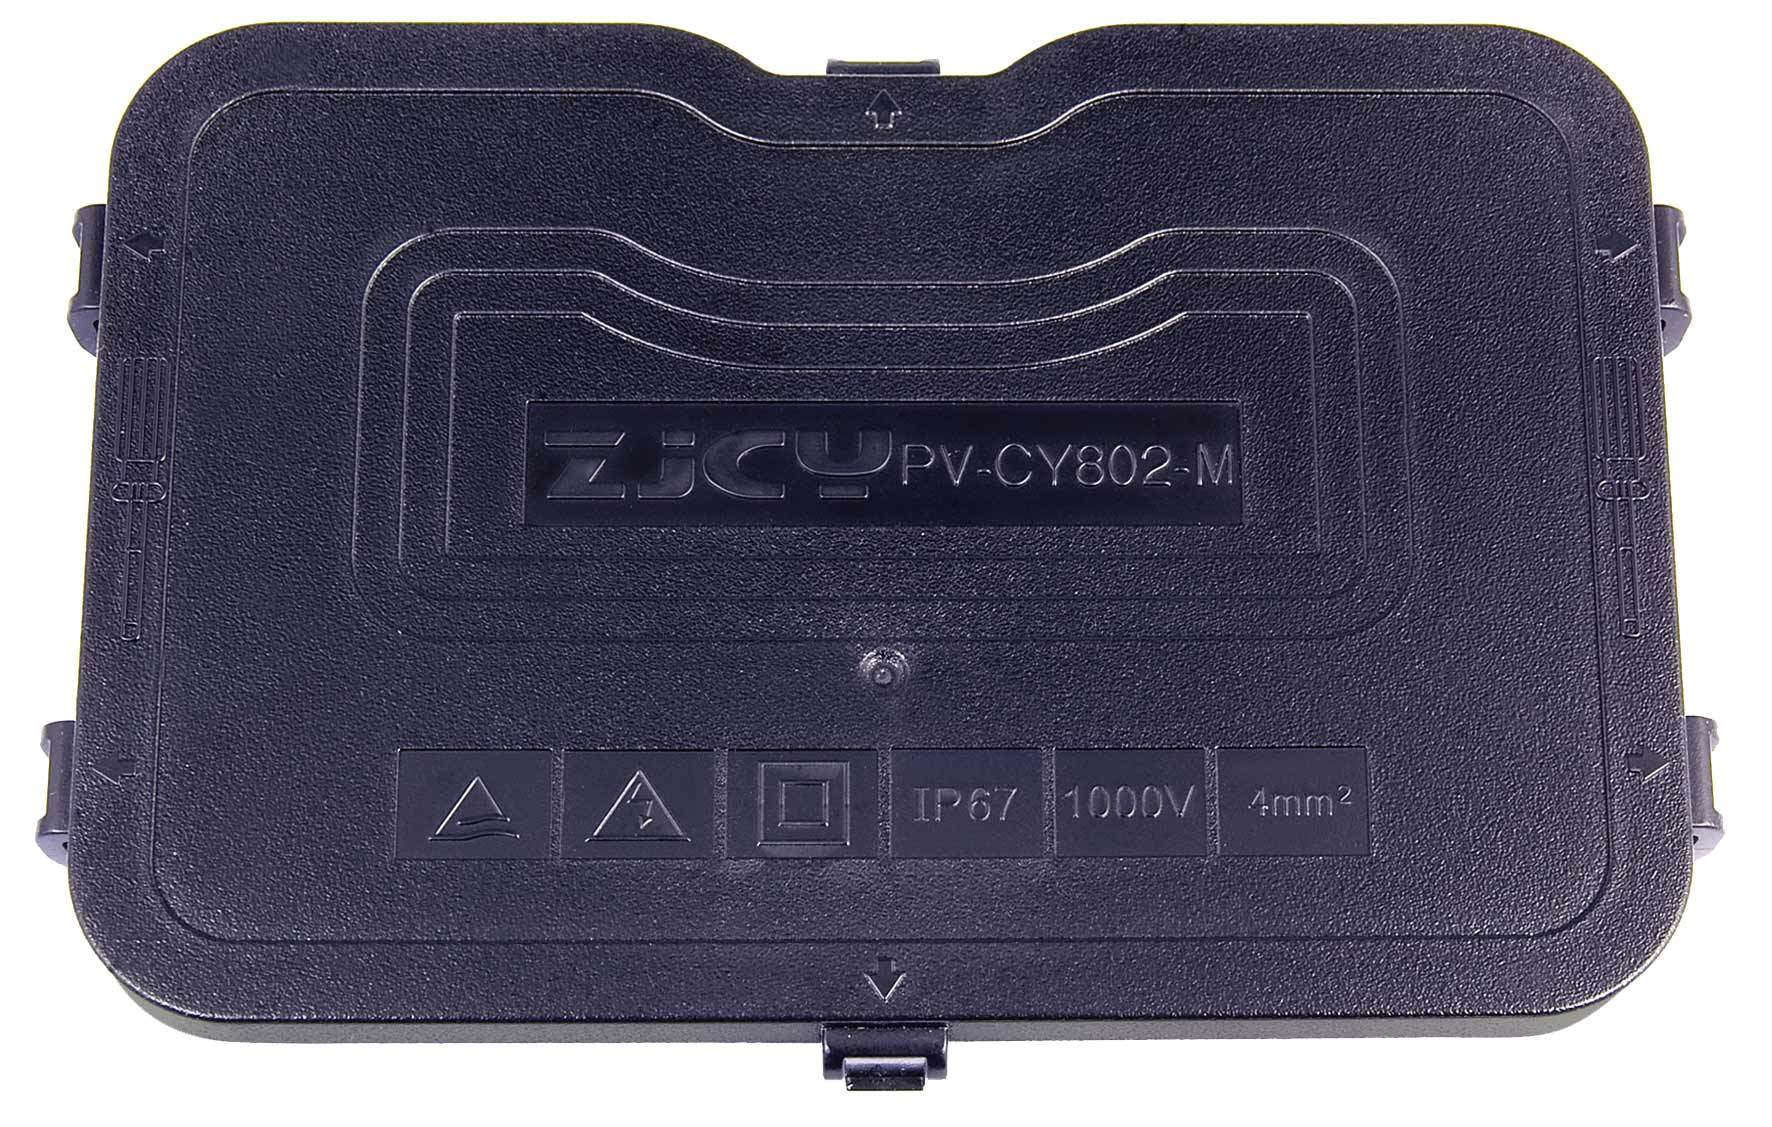 Big Size Junction Box. Cooper Cover Junction Box 12A 4 Terminal for 72′′ Module. IP67